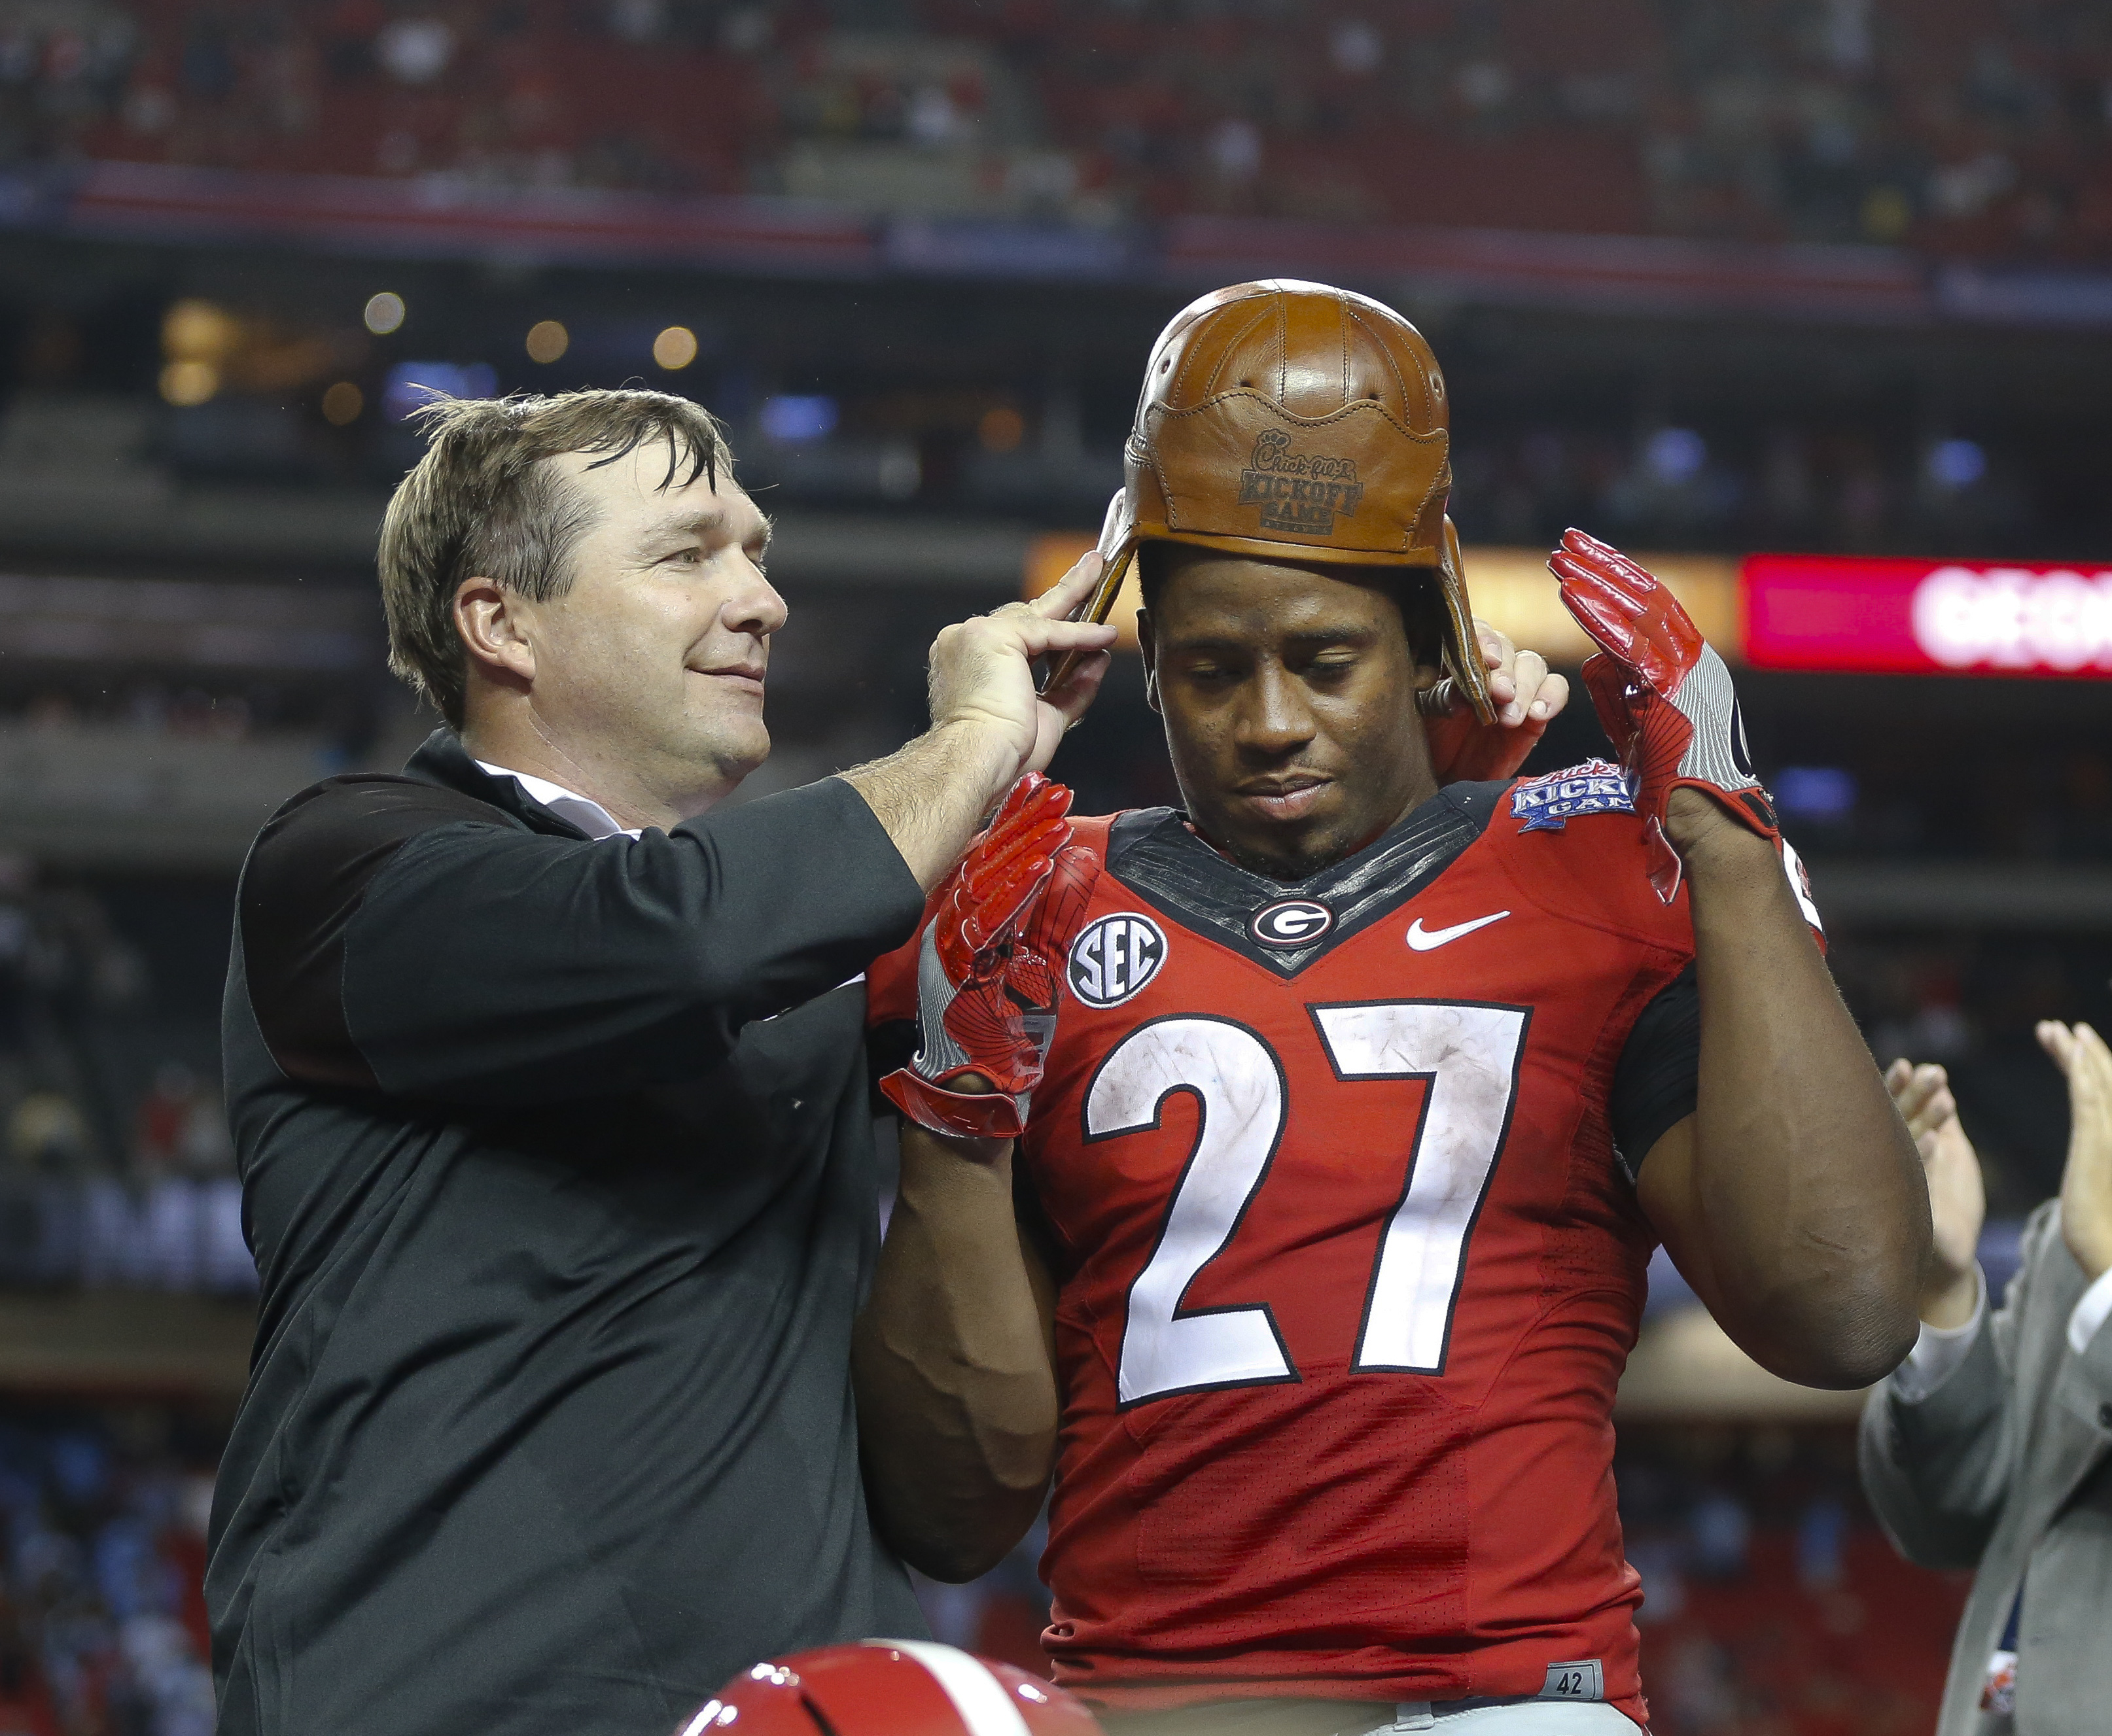 """Georgia head coach Kirby Smart puts the """"Old Leather Helmet"""" on running back Nick Chubb's head after an NCAA college football game against North Carolina in Atlanta, Saturday, Sept. 3, 2016. Georgia won 33-24. The helmet is part of a trophy awarded to the"""